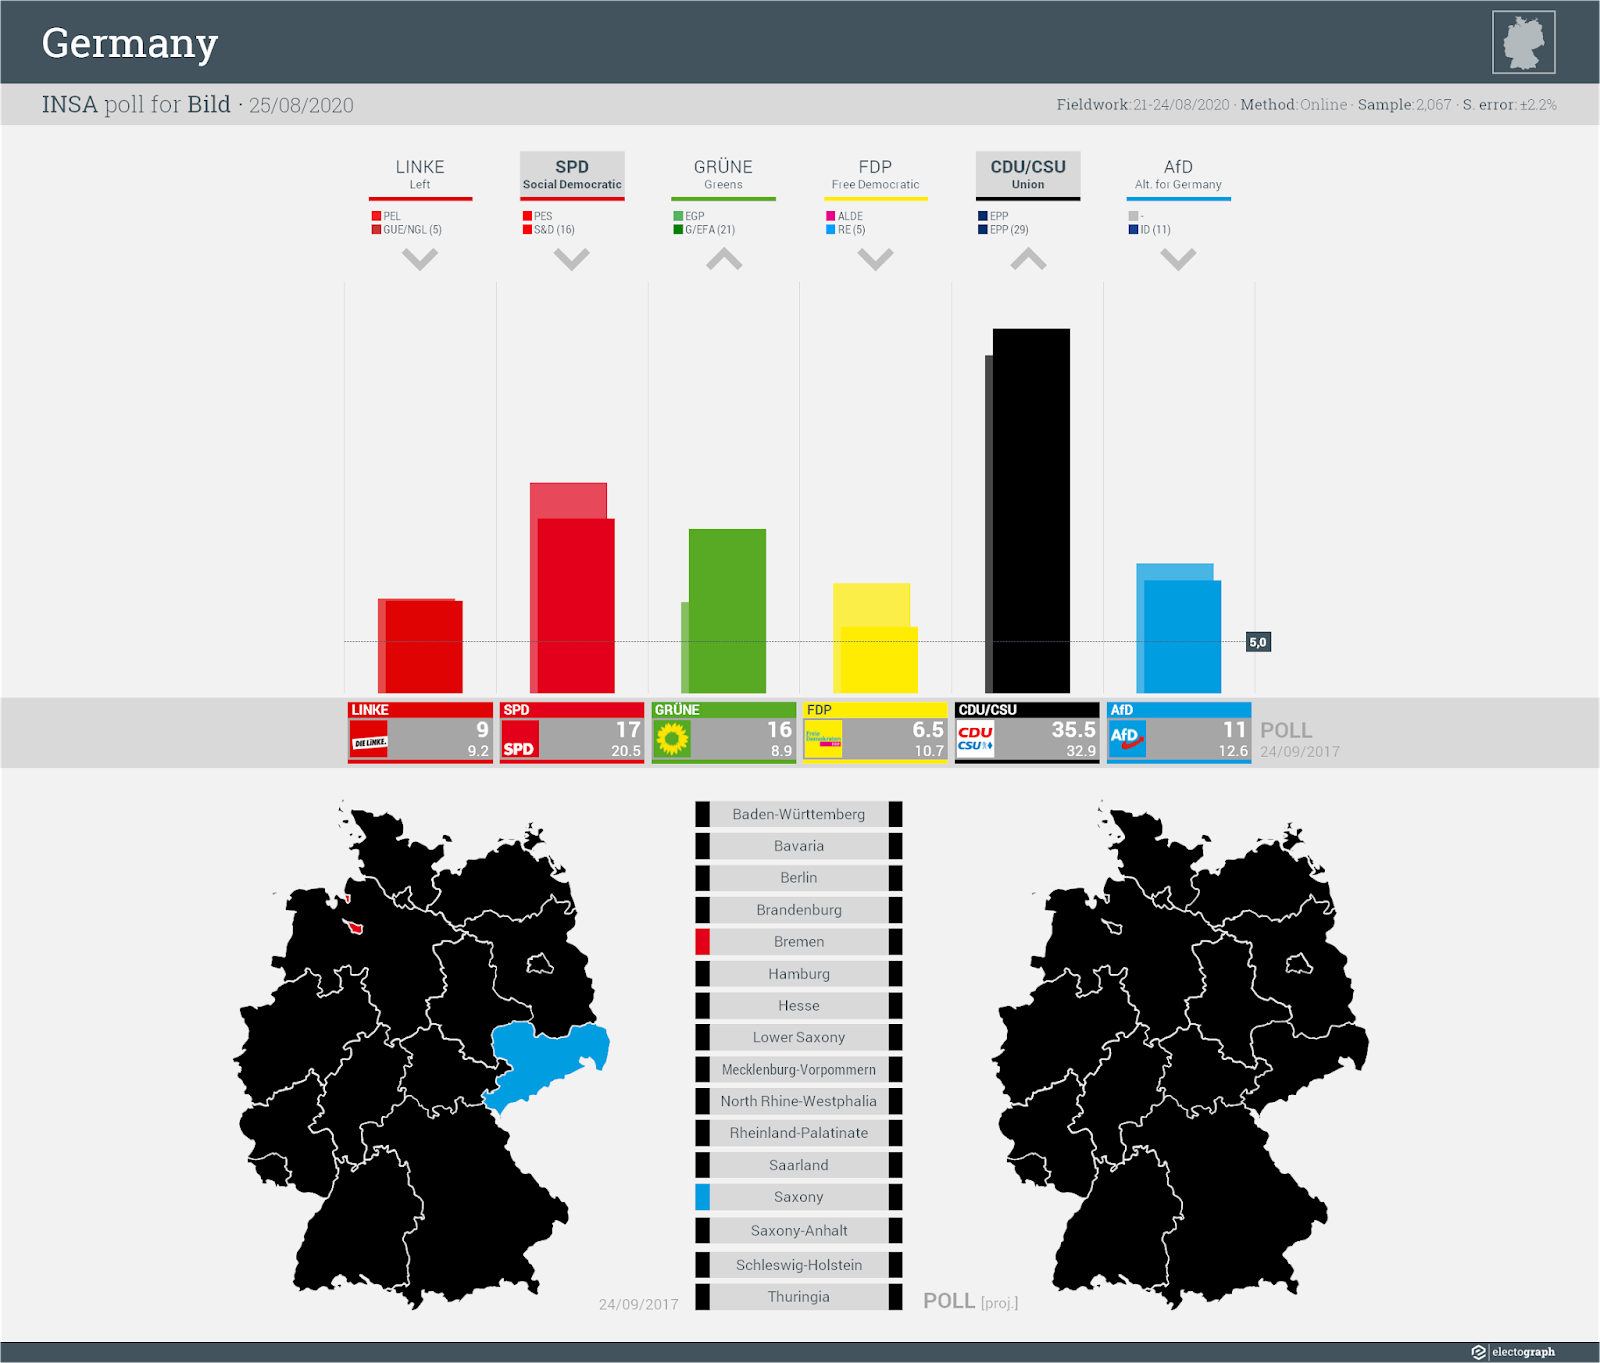 GERMANY: INSA poll chart for Bild, 25 August 2020